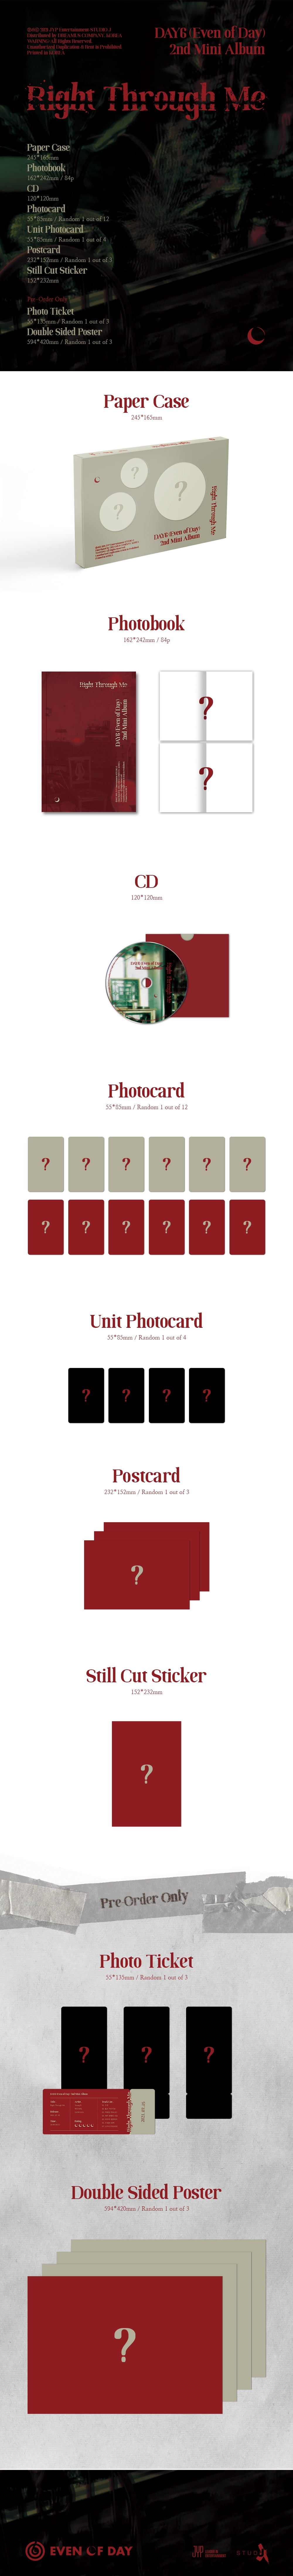 PREORDER - DAY6 (EVEN OF DAY) - 2ND MINI ALBUM RIGHT THROUGH ME Infographic